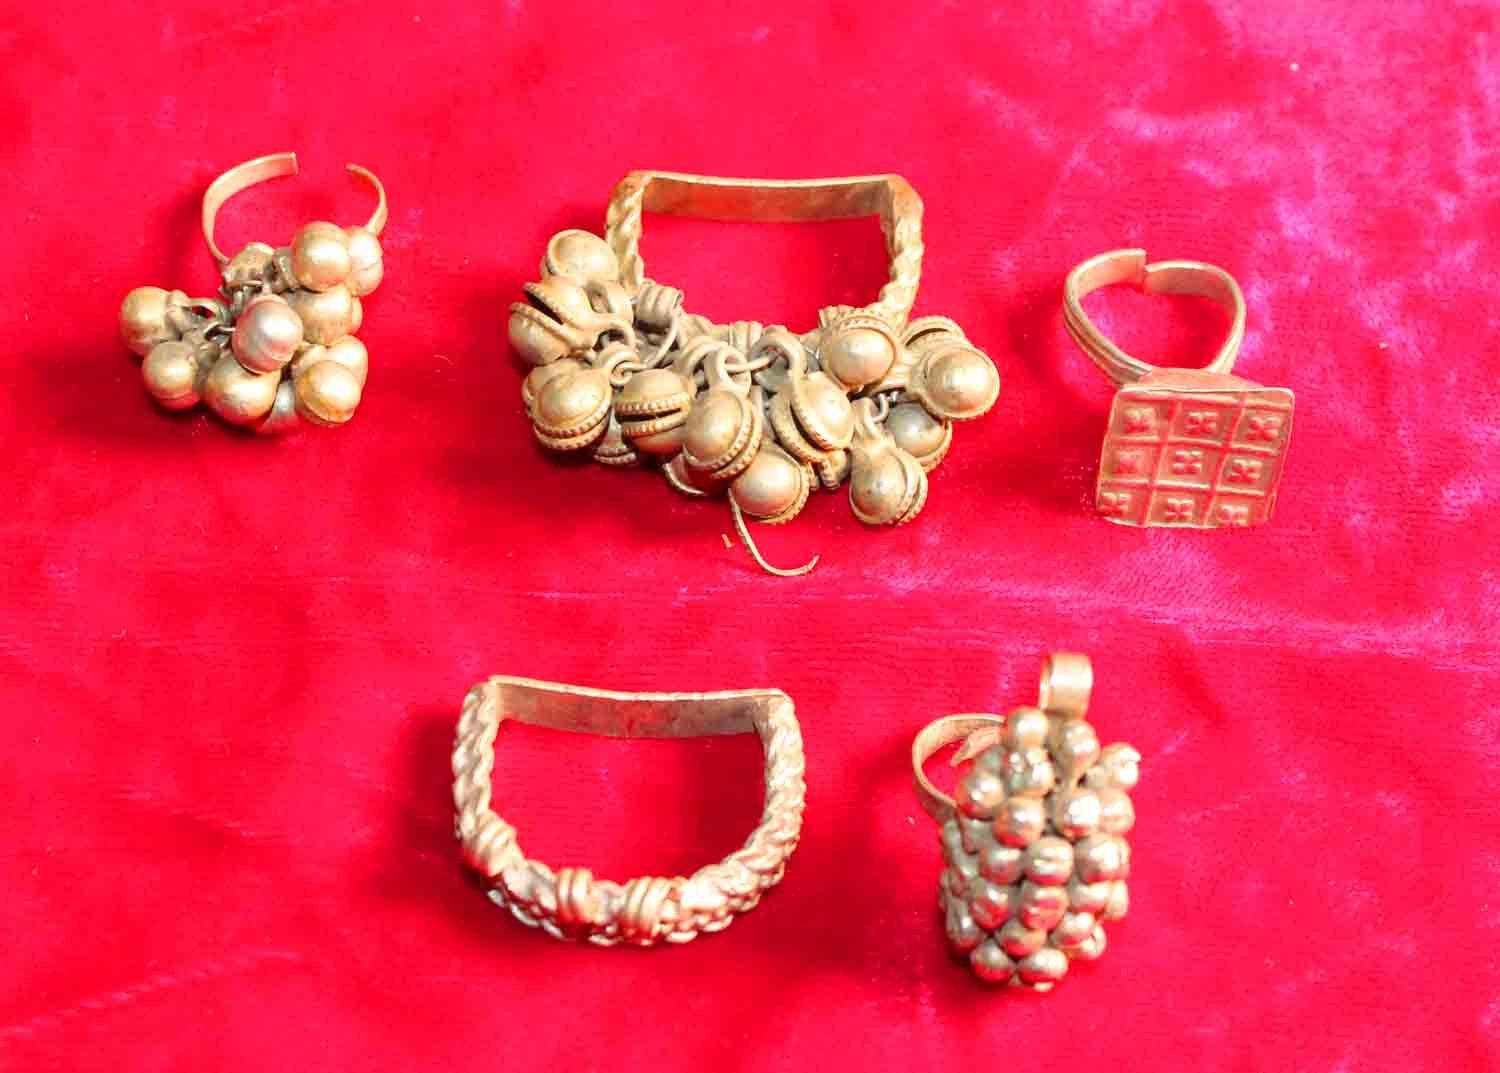 5 Antique Copper Bells Cluster Toe Ring Indian Ethnic Bellydance Within Most Recent Ethnic Toe Rings (Gallery 3 of 15)